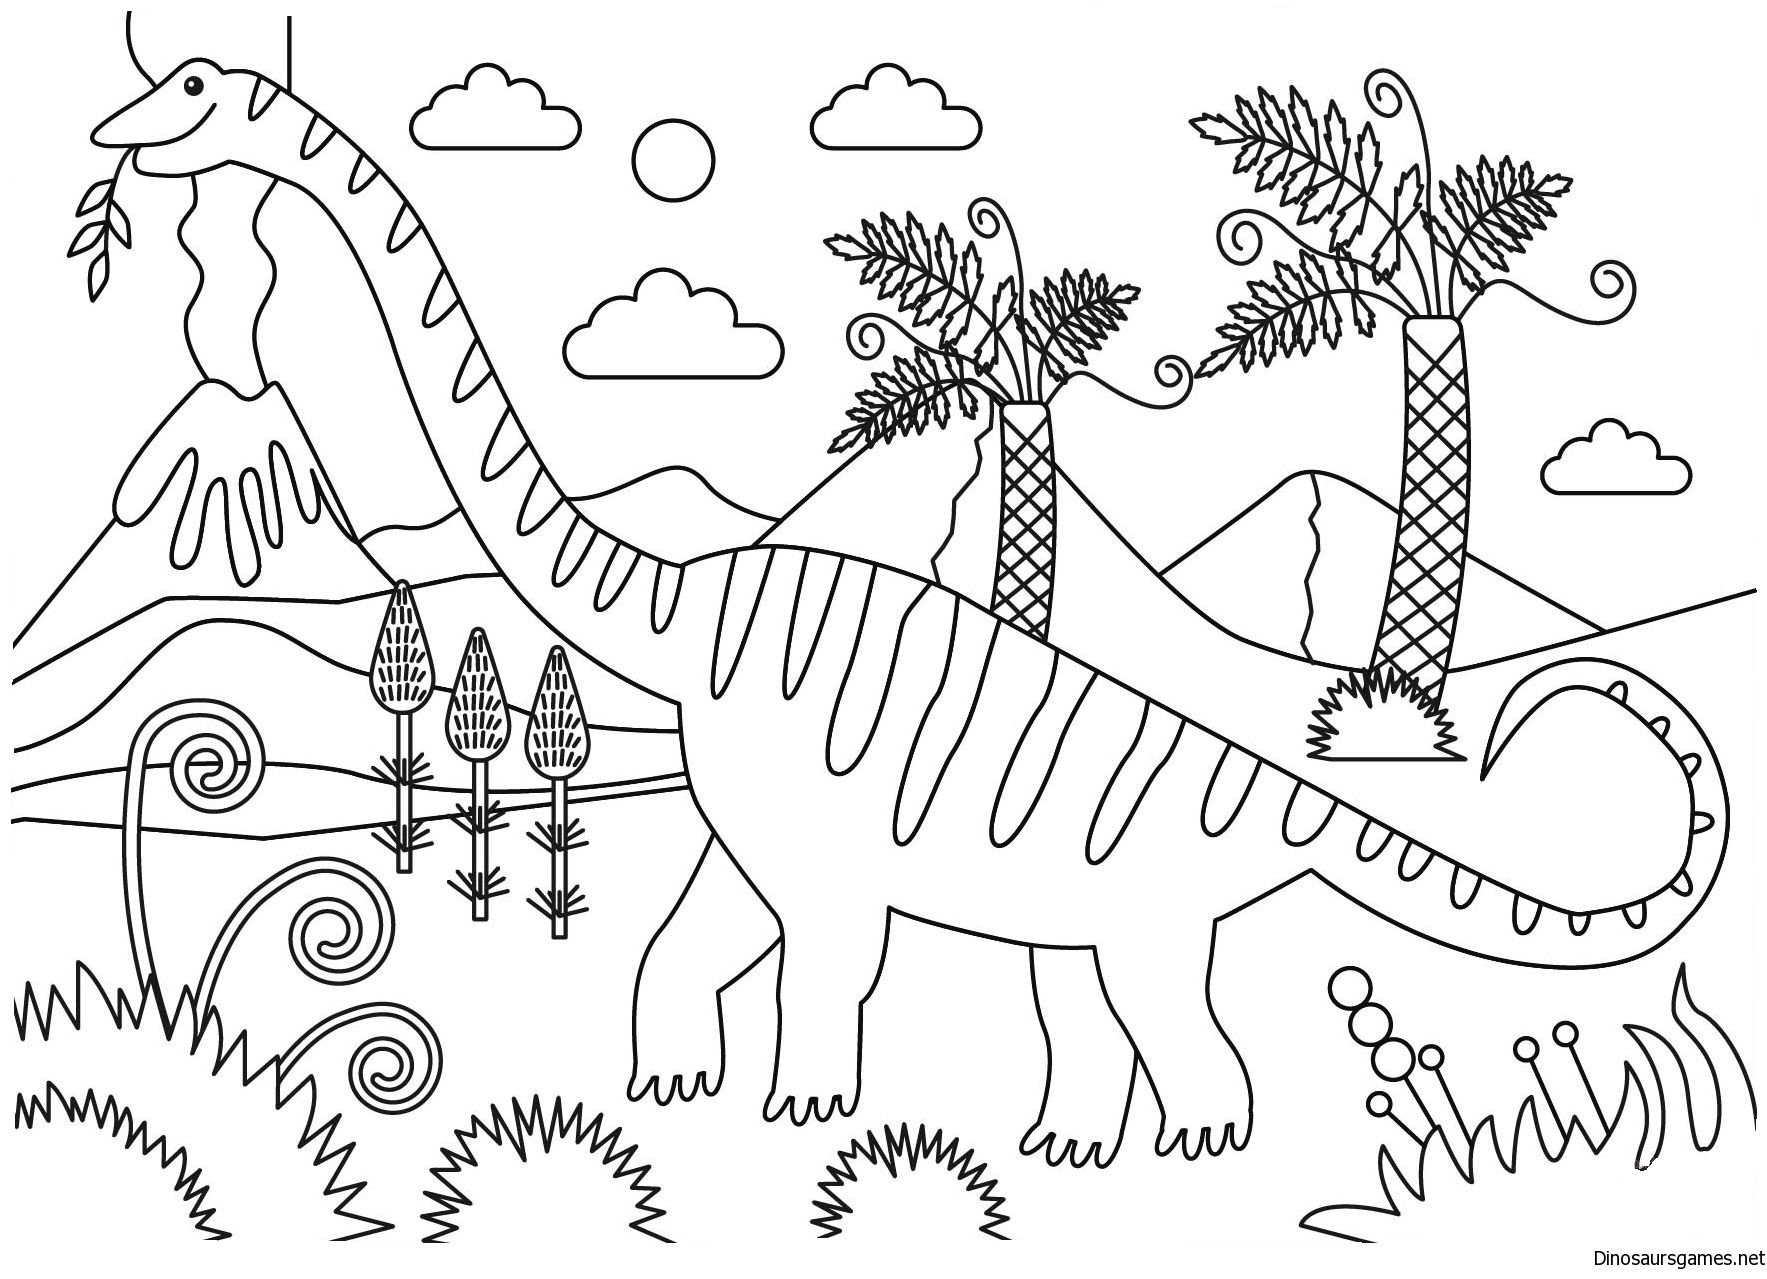 Mamenchisaurus Dinosaur Coloring Page Dinosaur Coloring Pages Coloring Pages Dinosaur Coloring